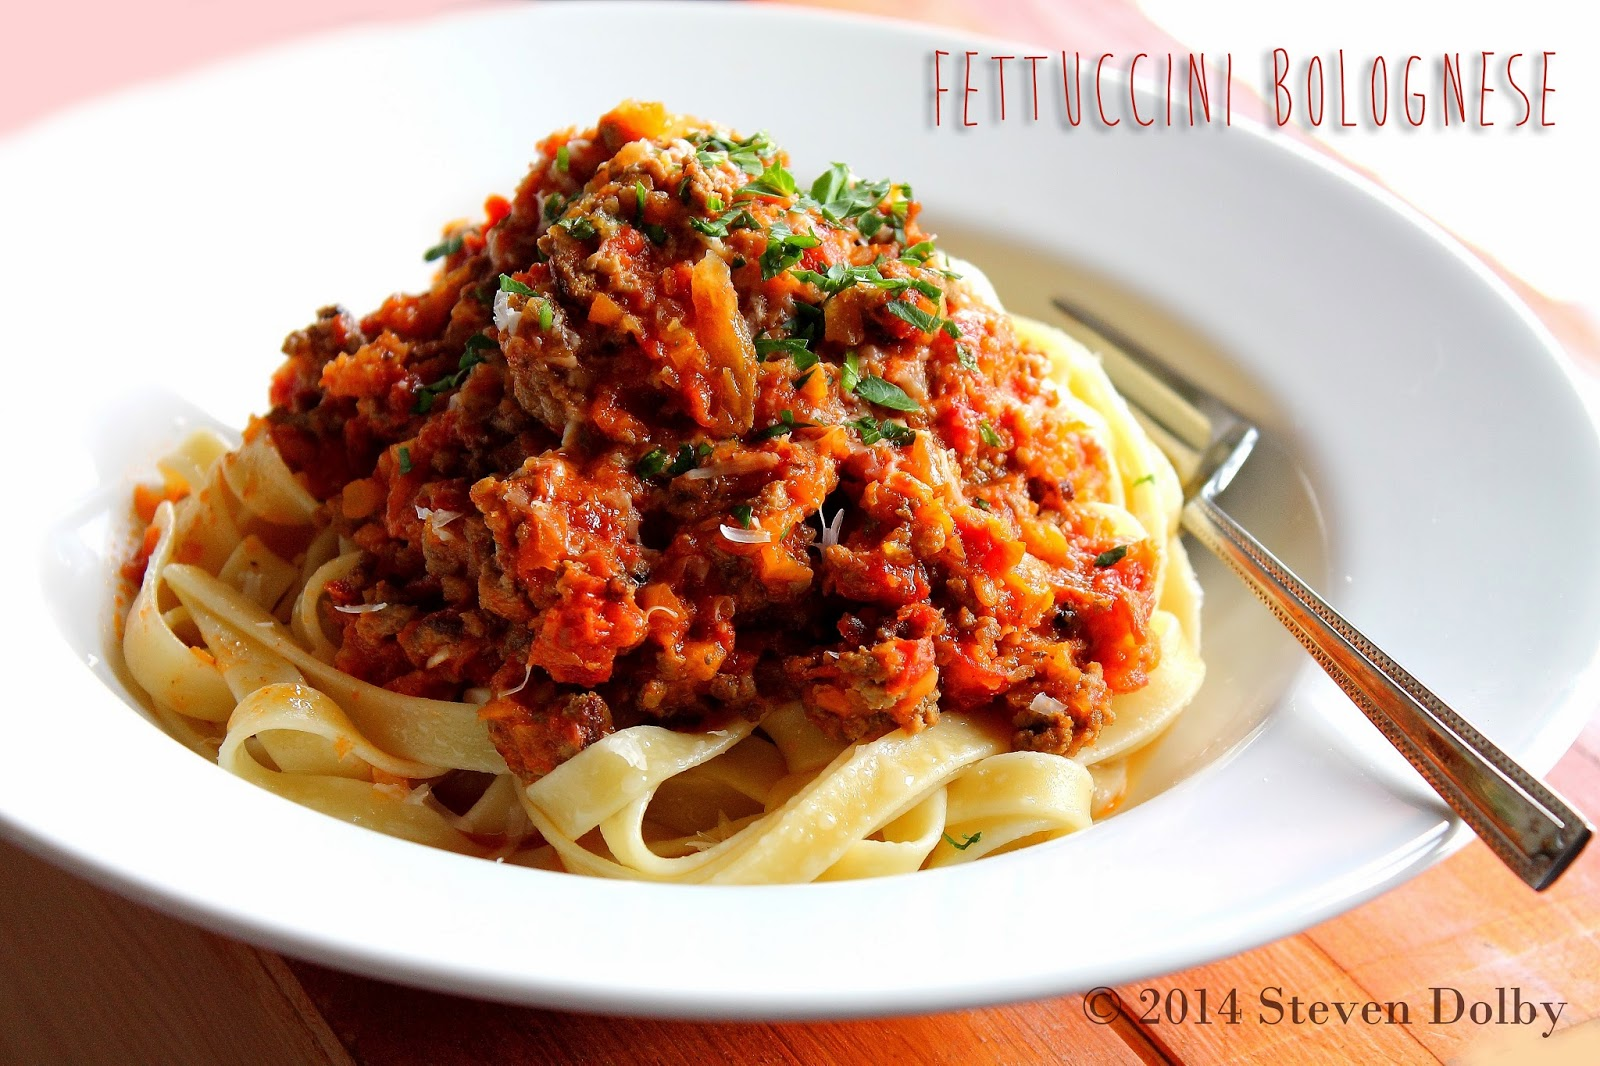 Fettuccini Bolognese for Aaron by Steven Dolby